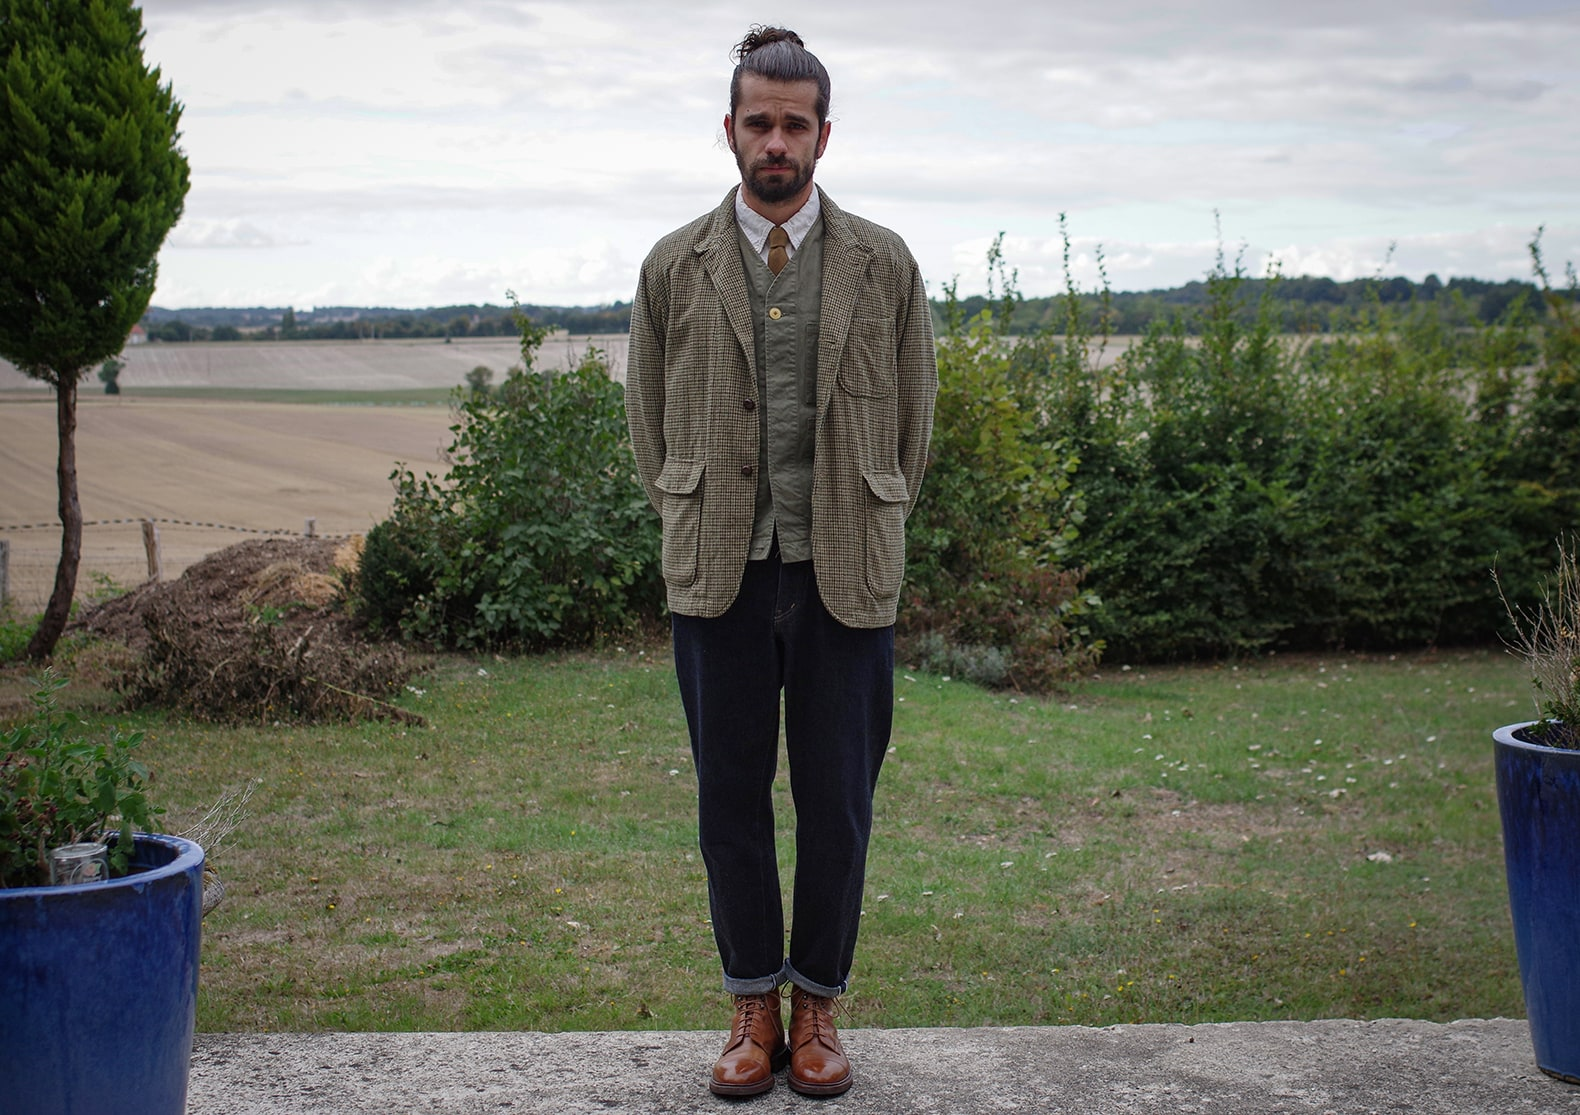 comment porter une veste pied de poule homme / tenue en coniston crockett & jones